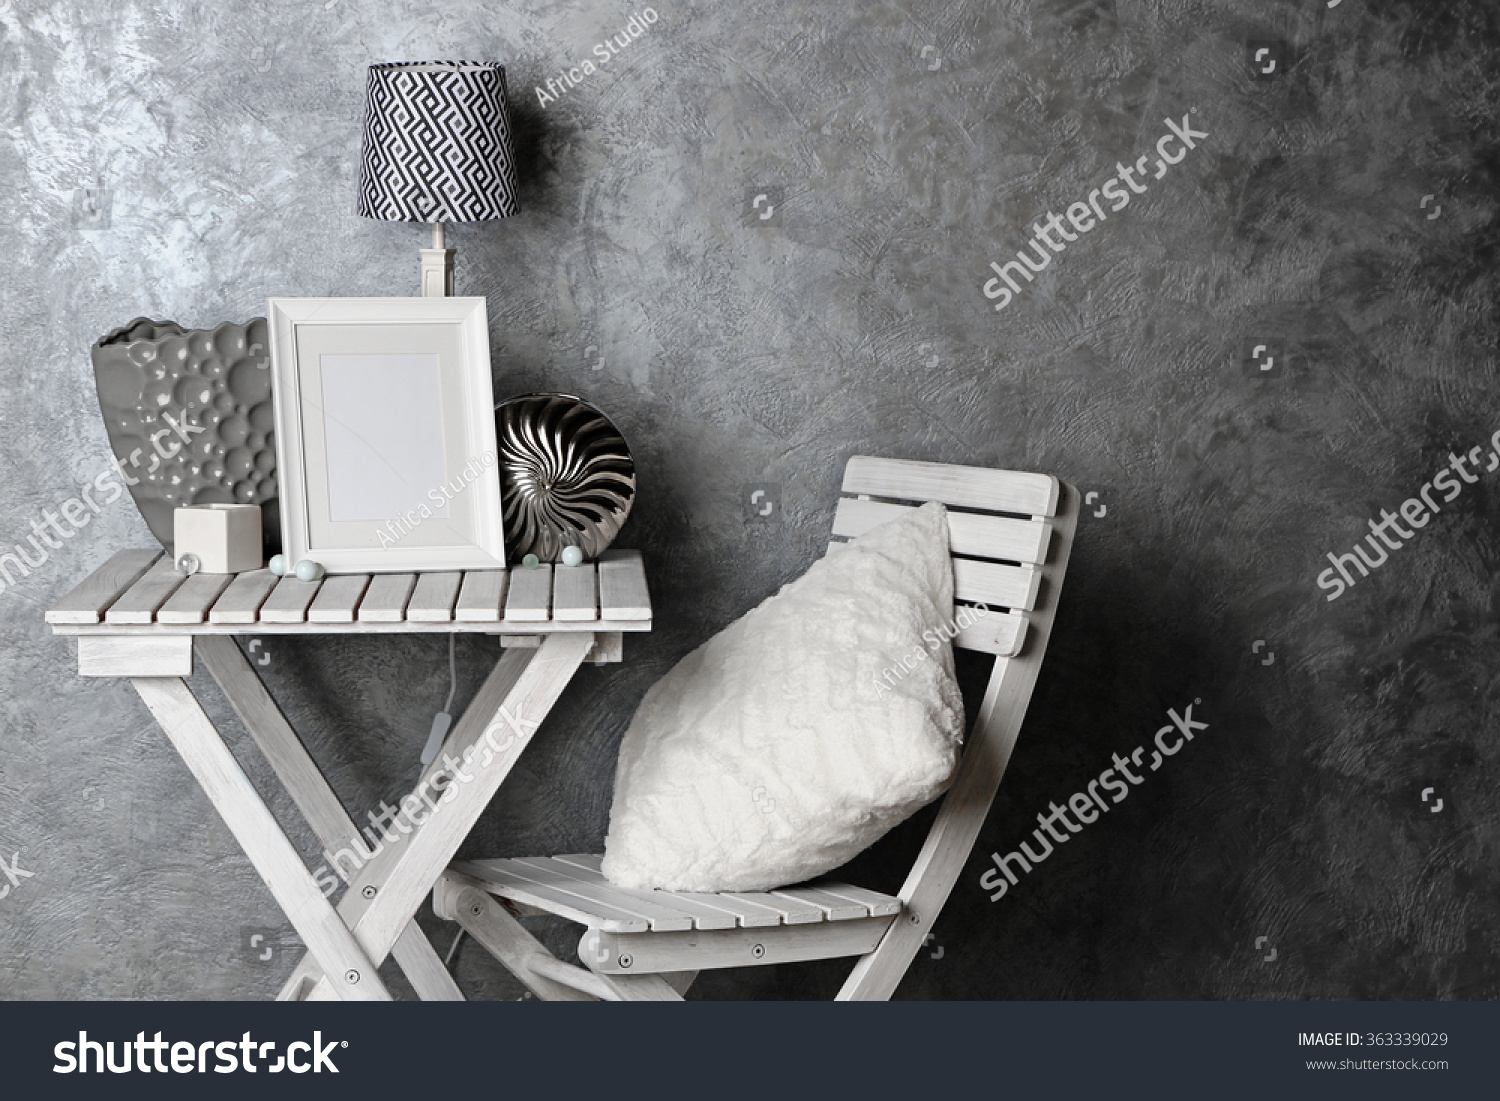 Home Decor On Table On Grey Stock Photo 363339029 Shutterstock